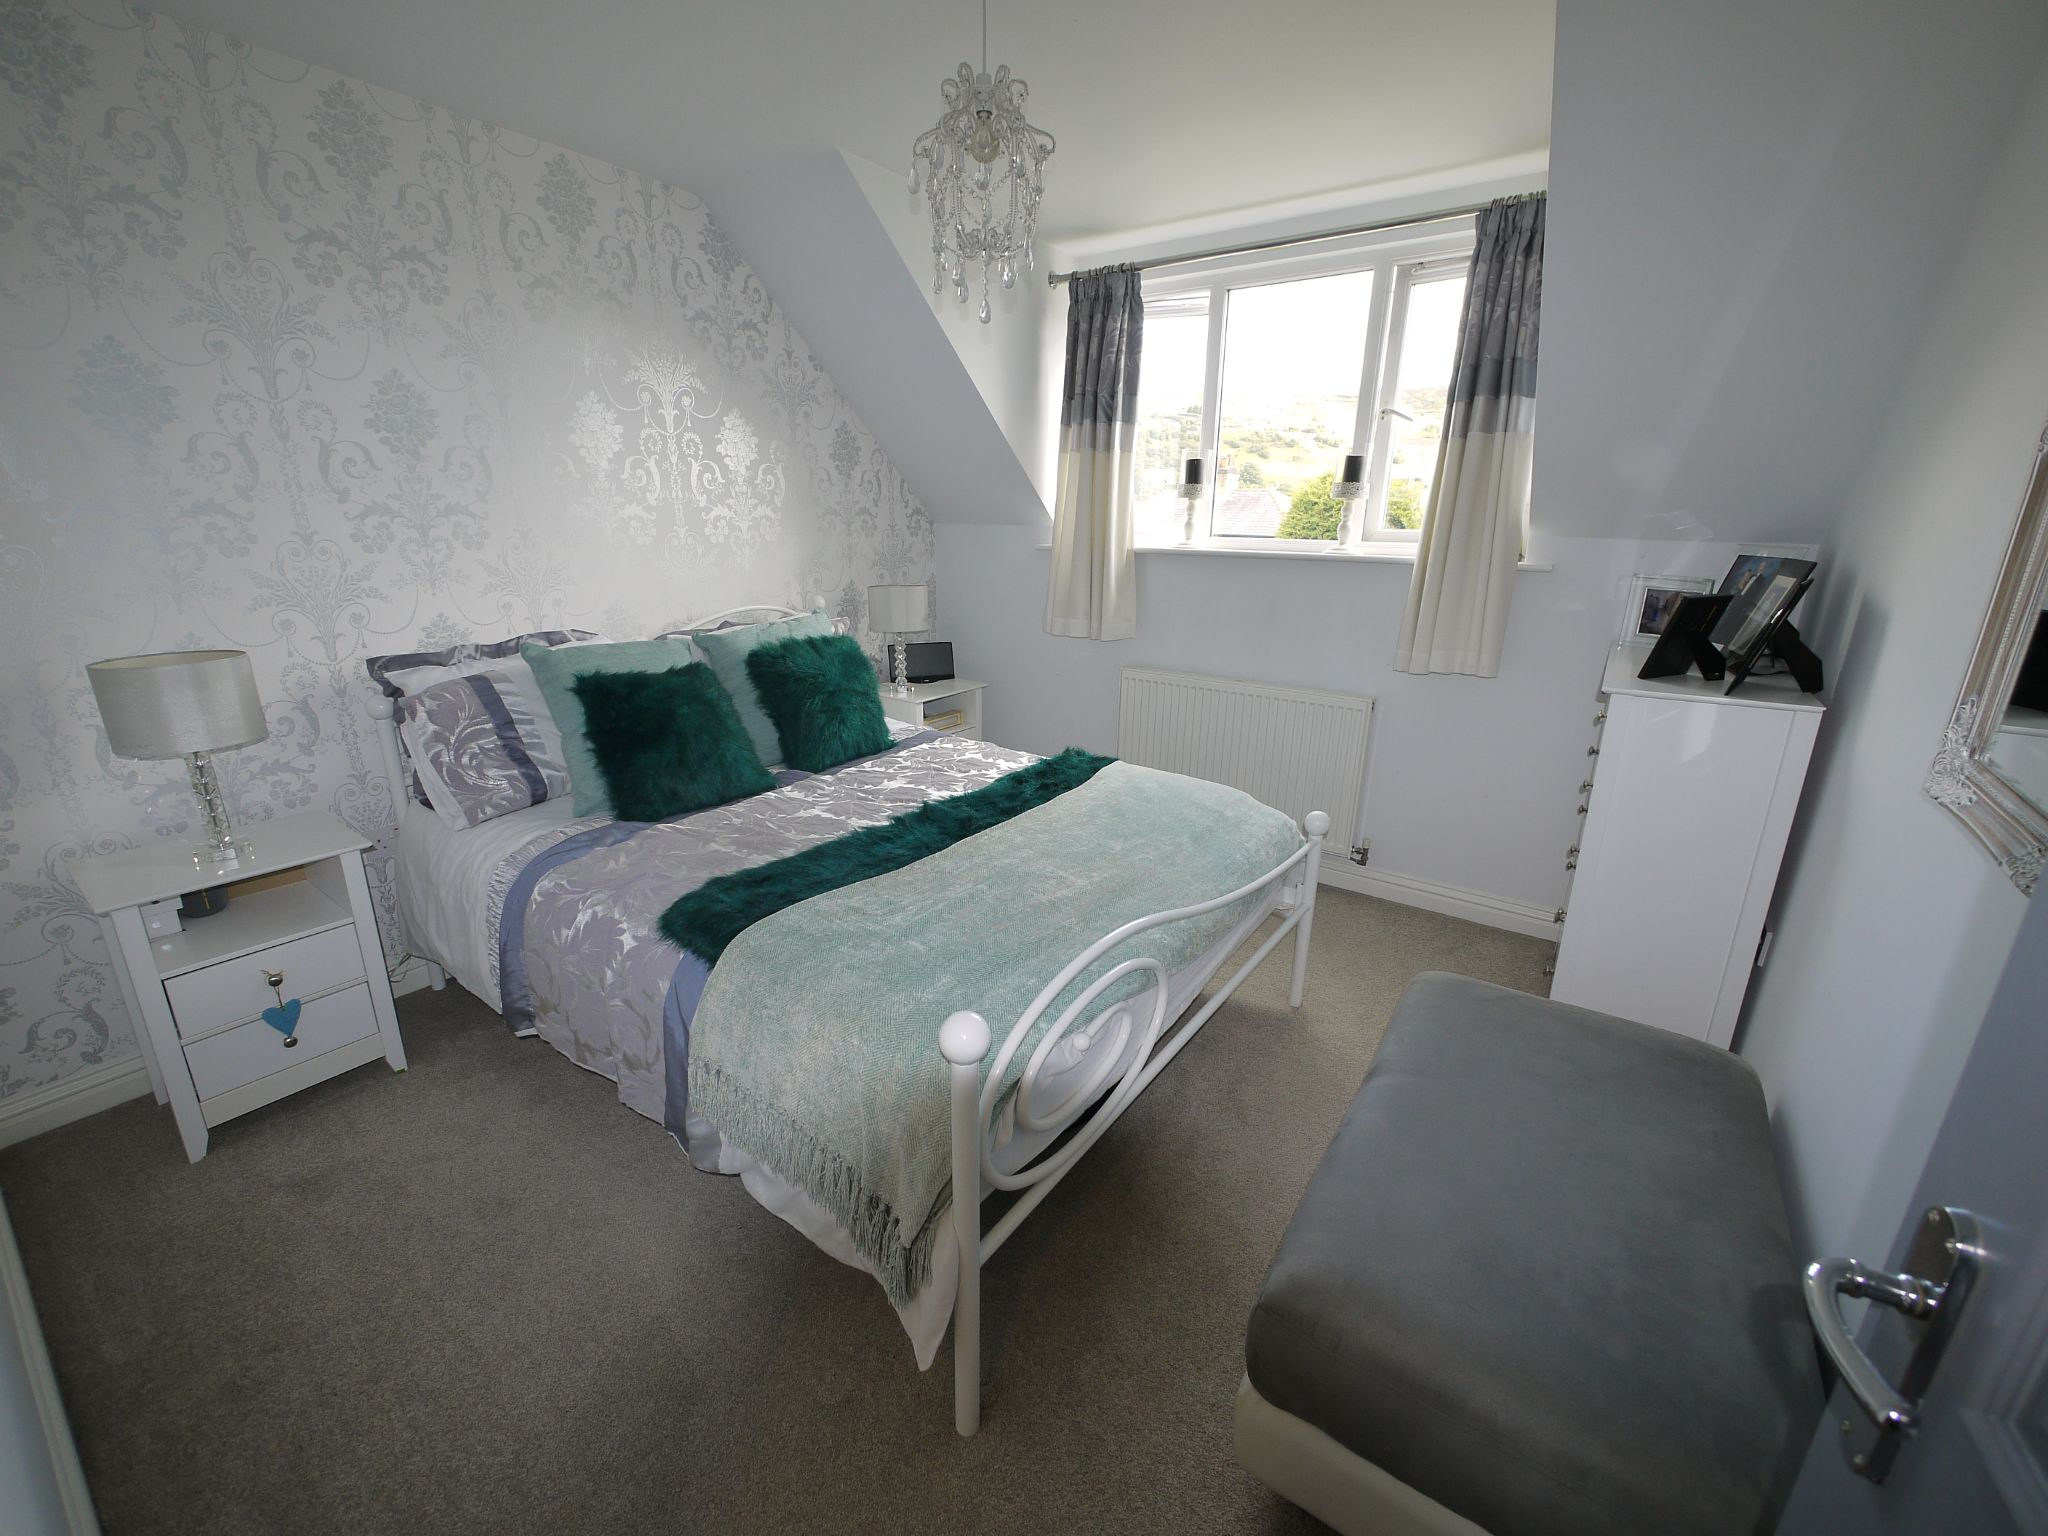 4 bedroom detached house SSTC in Halifax - Bed 2.